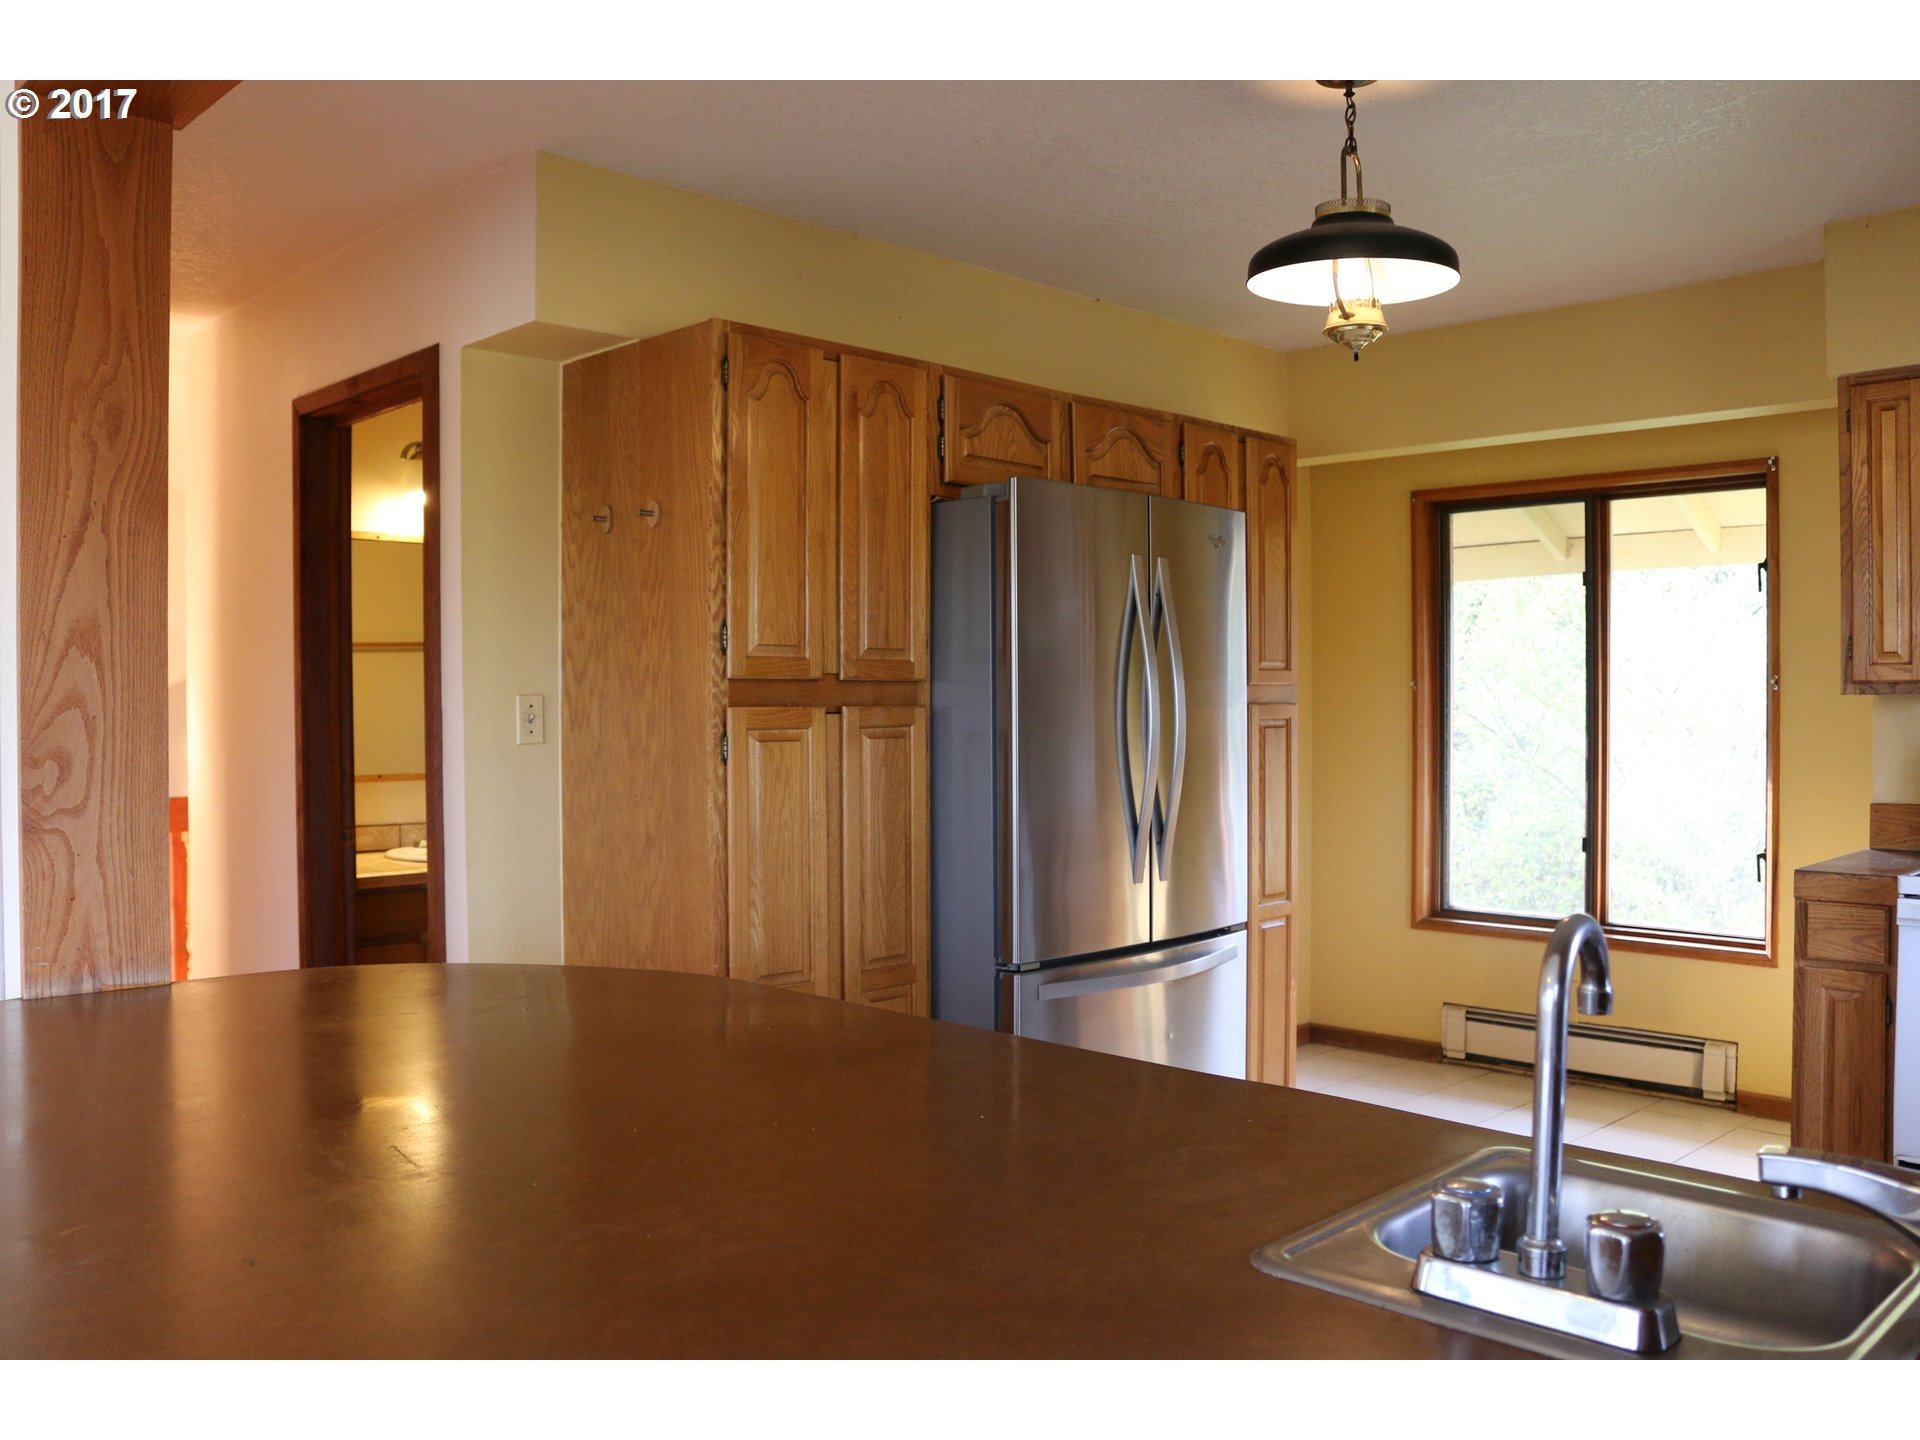 2720 MAGONE LN West Linn, OR 97068 - MLS #: 17050648